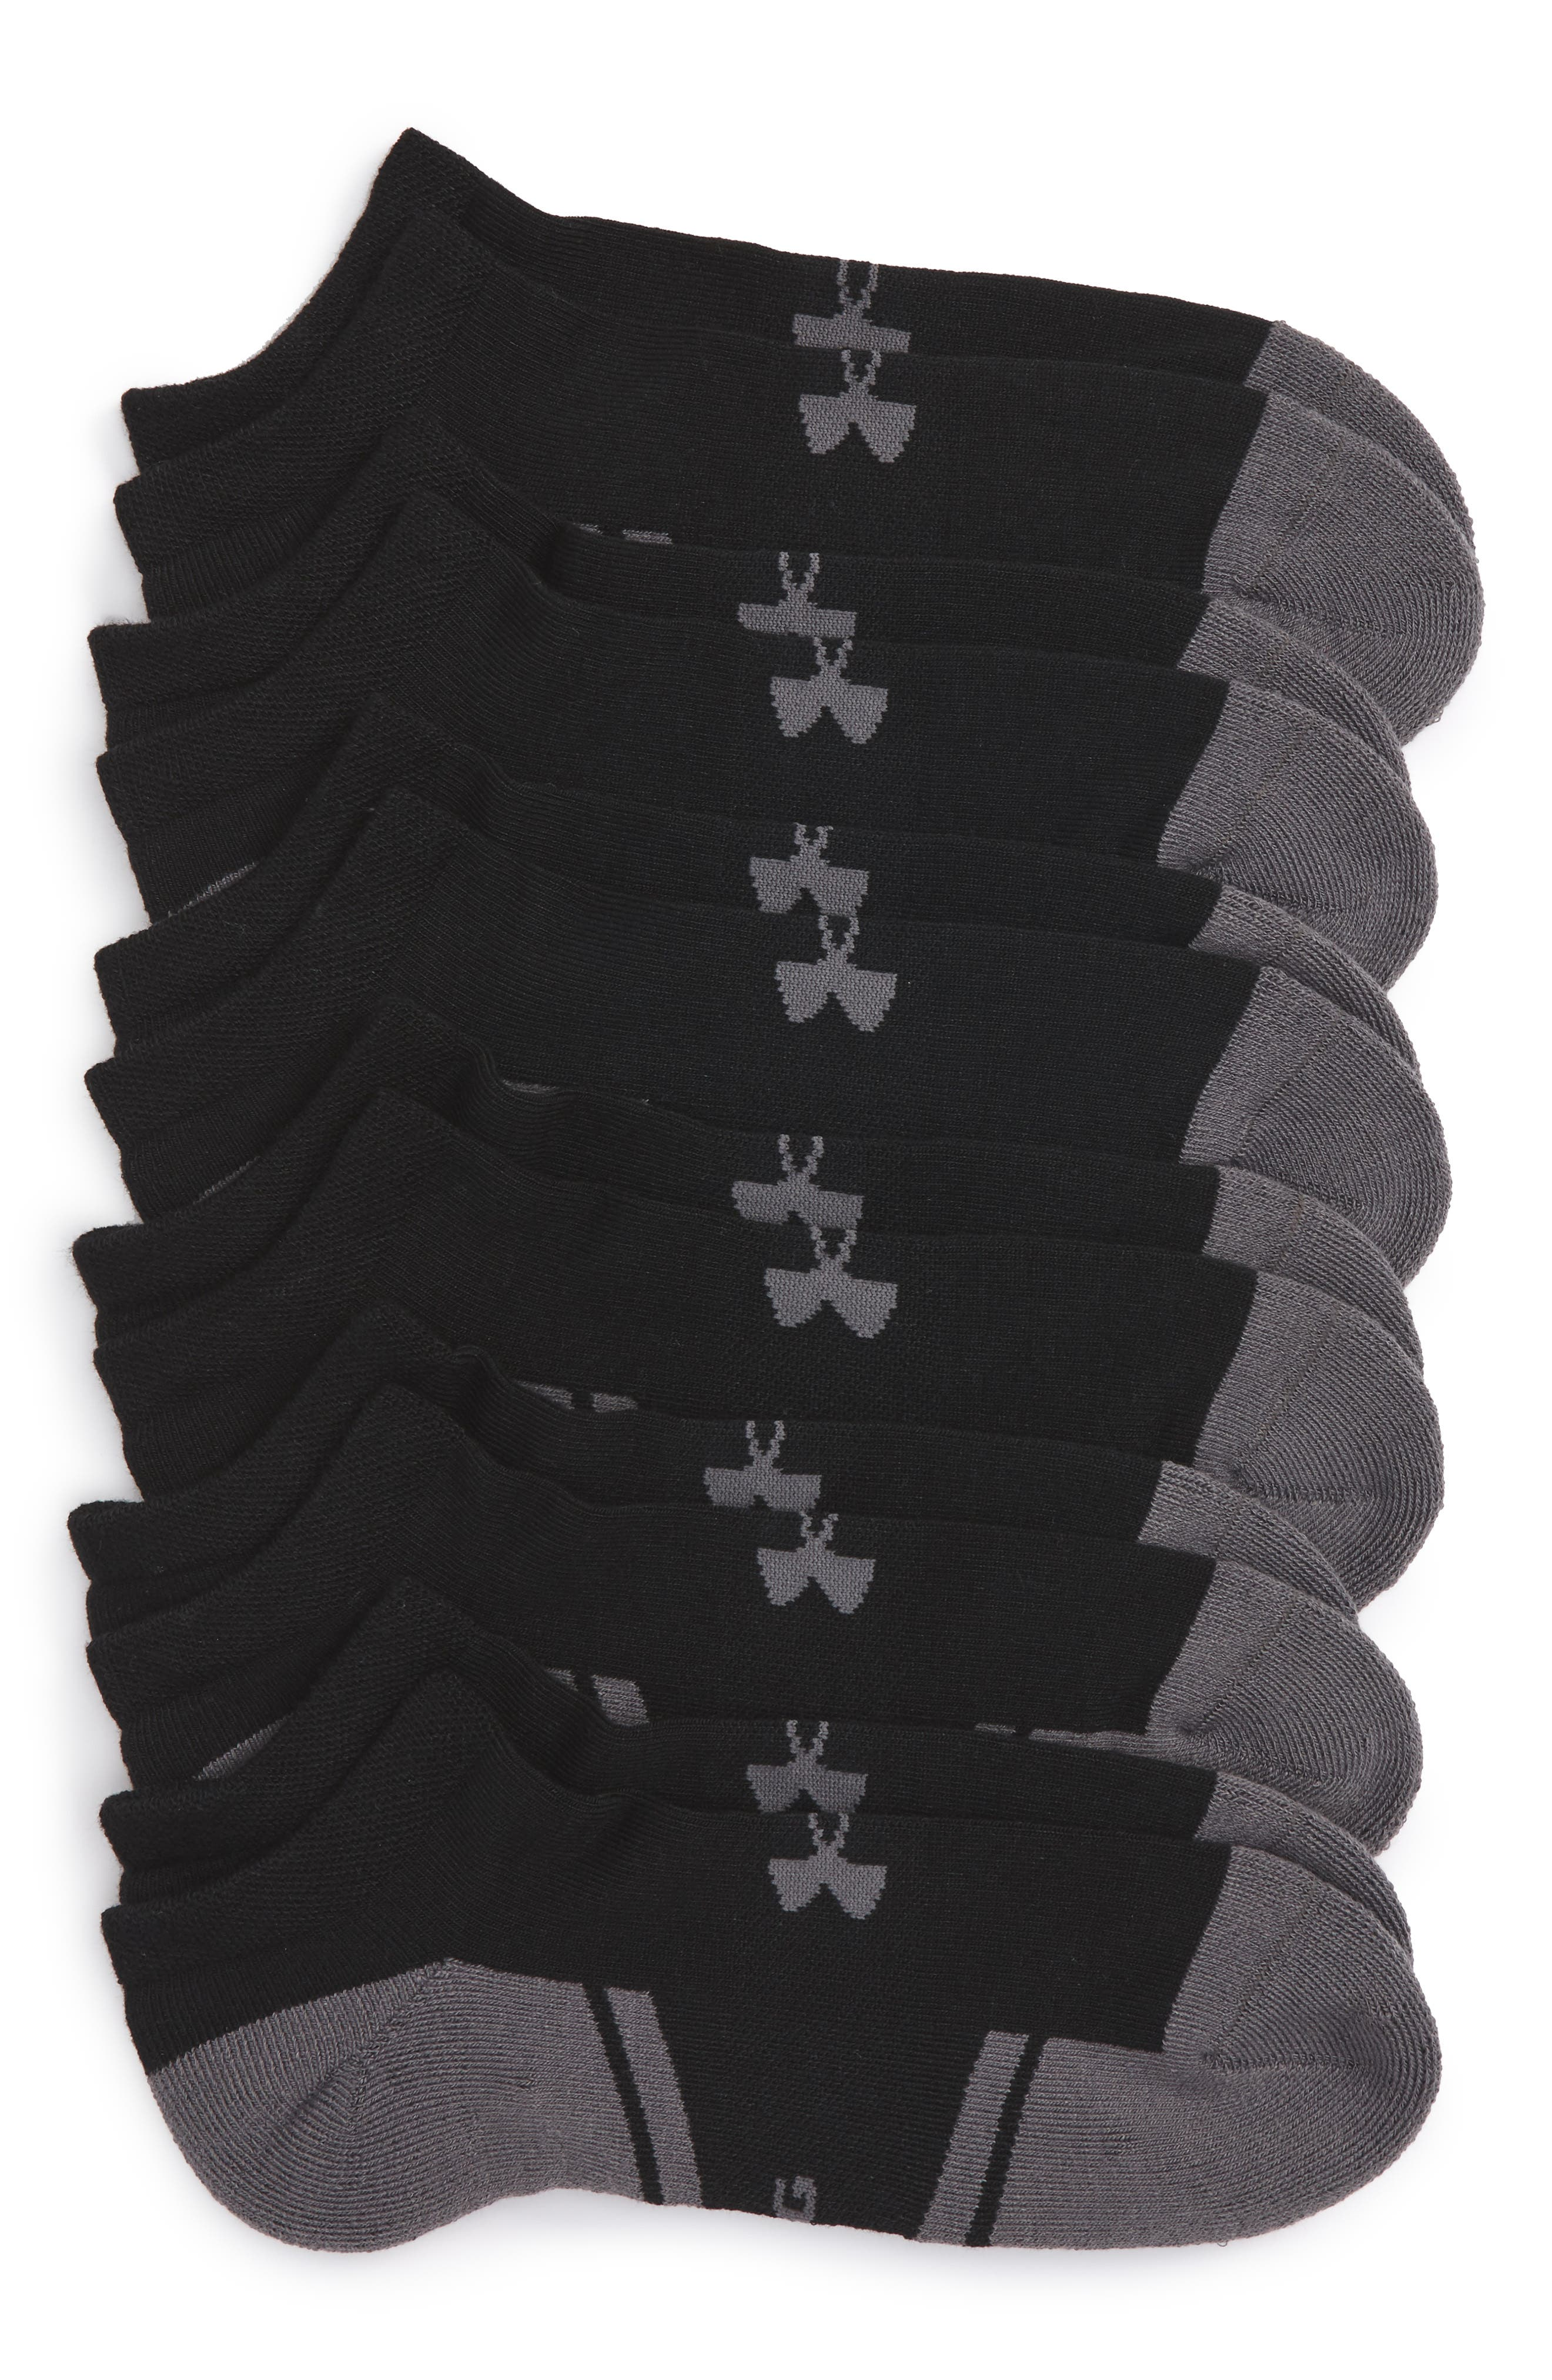 Under Armour Resistor 3.0 6-Pack No-Show Socks